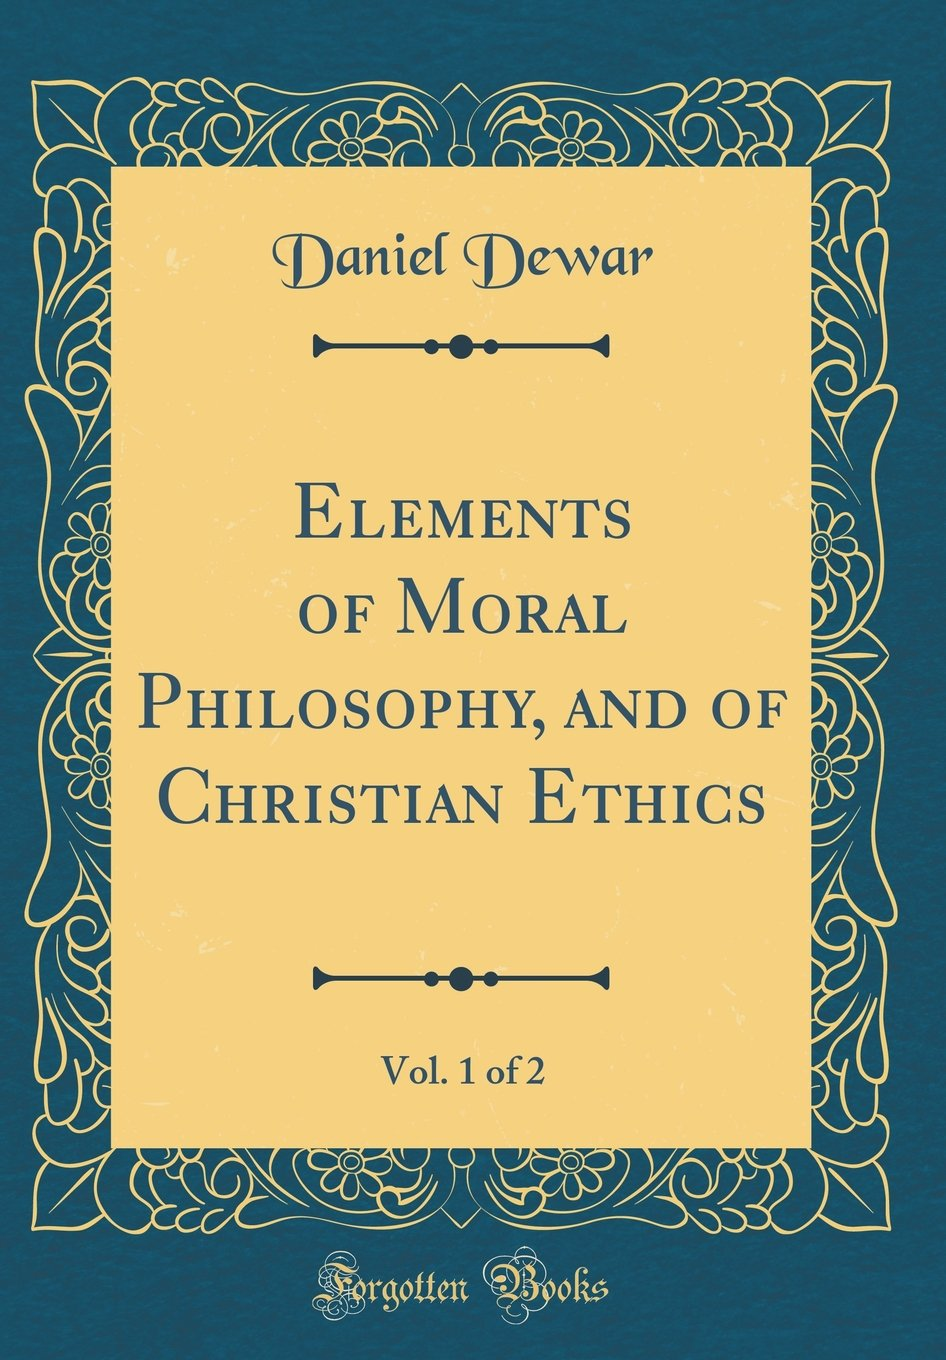 Download Elements of Moral Philosophy, and of Christian Ethics, Vol. 1 of 2 (Classic Reprint) ebook